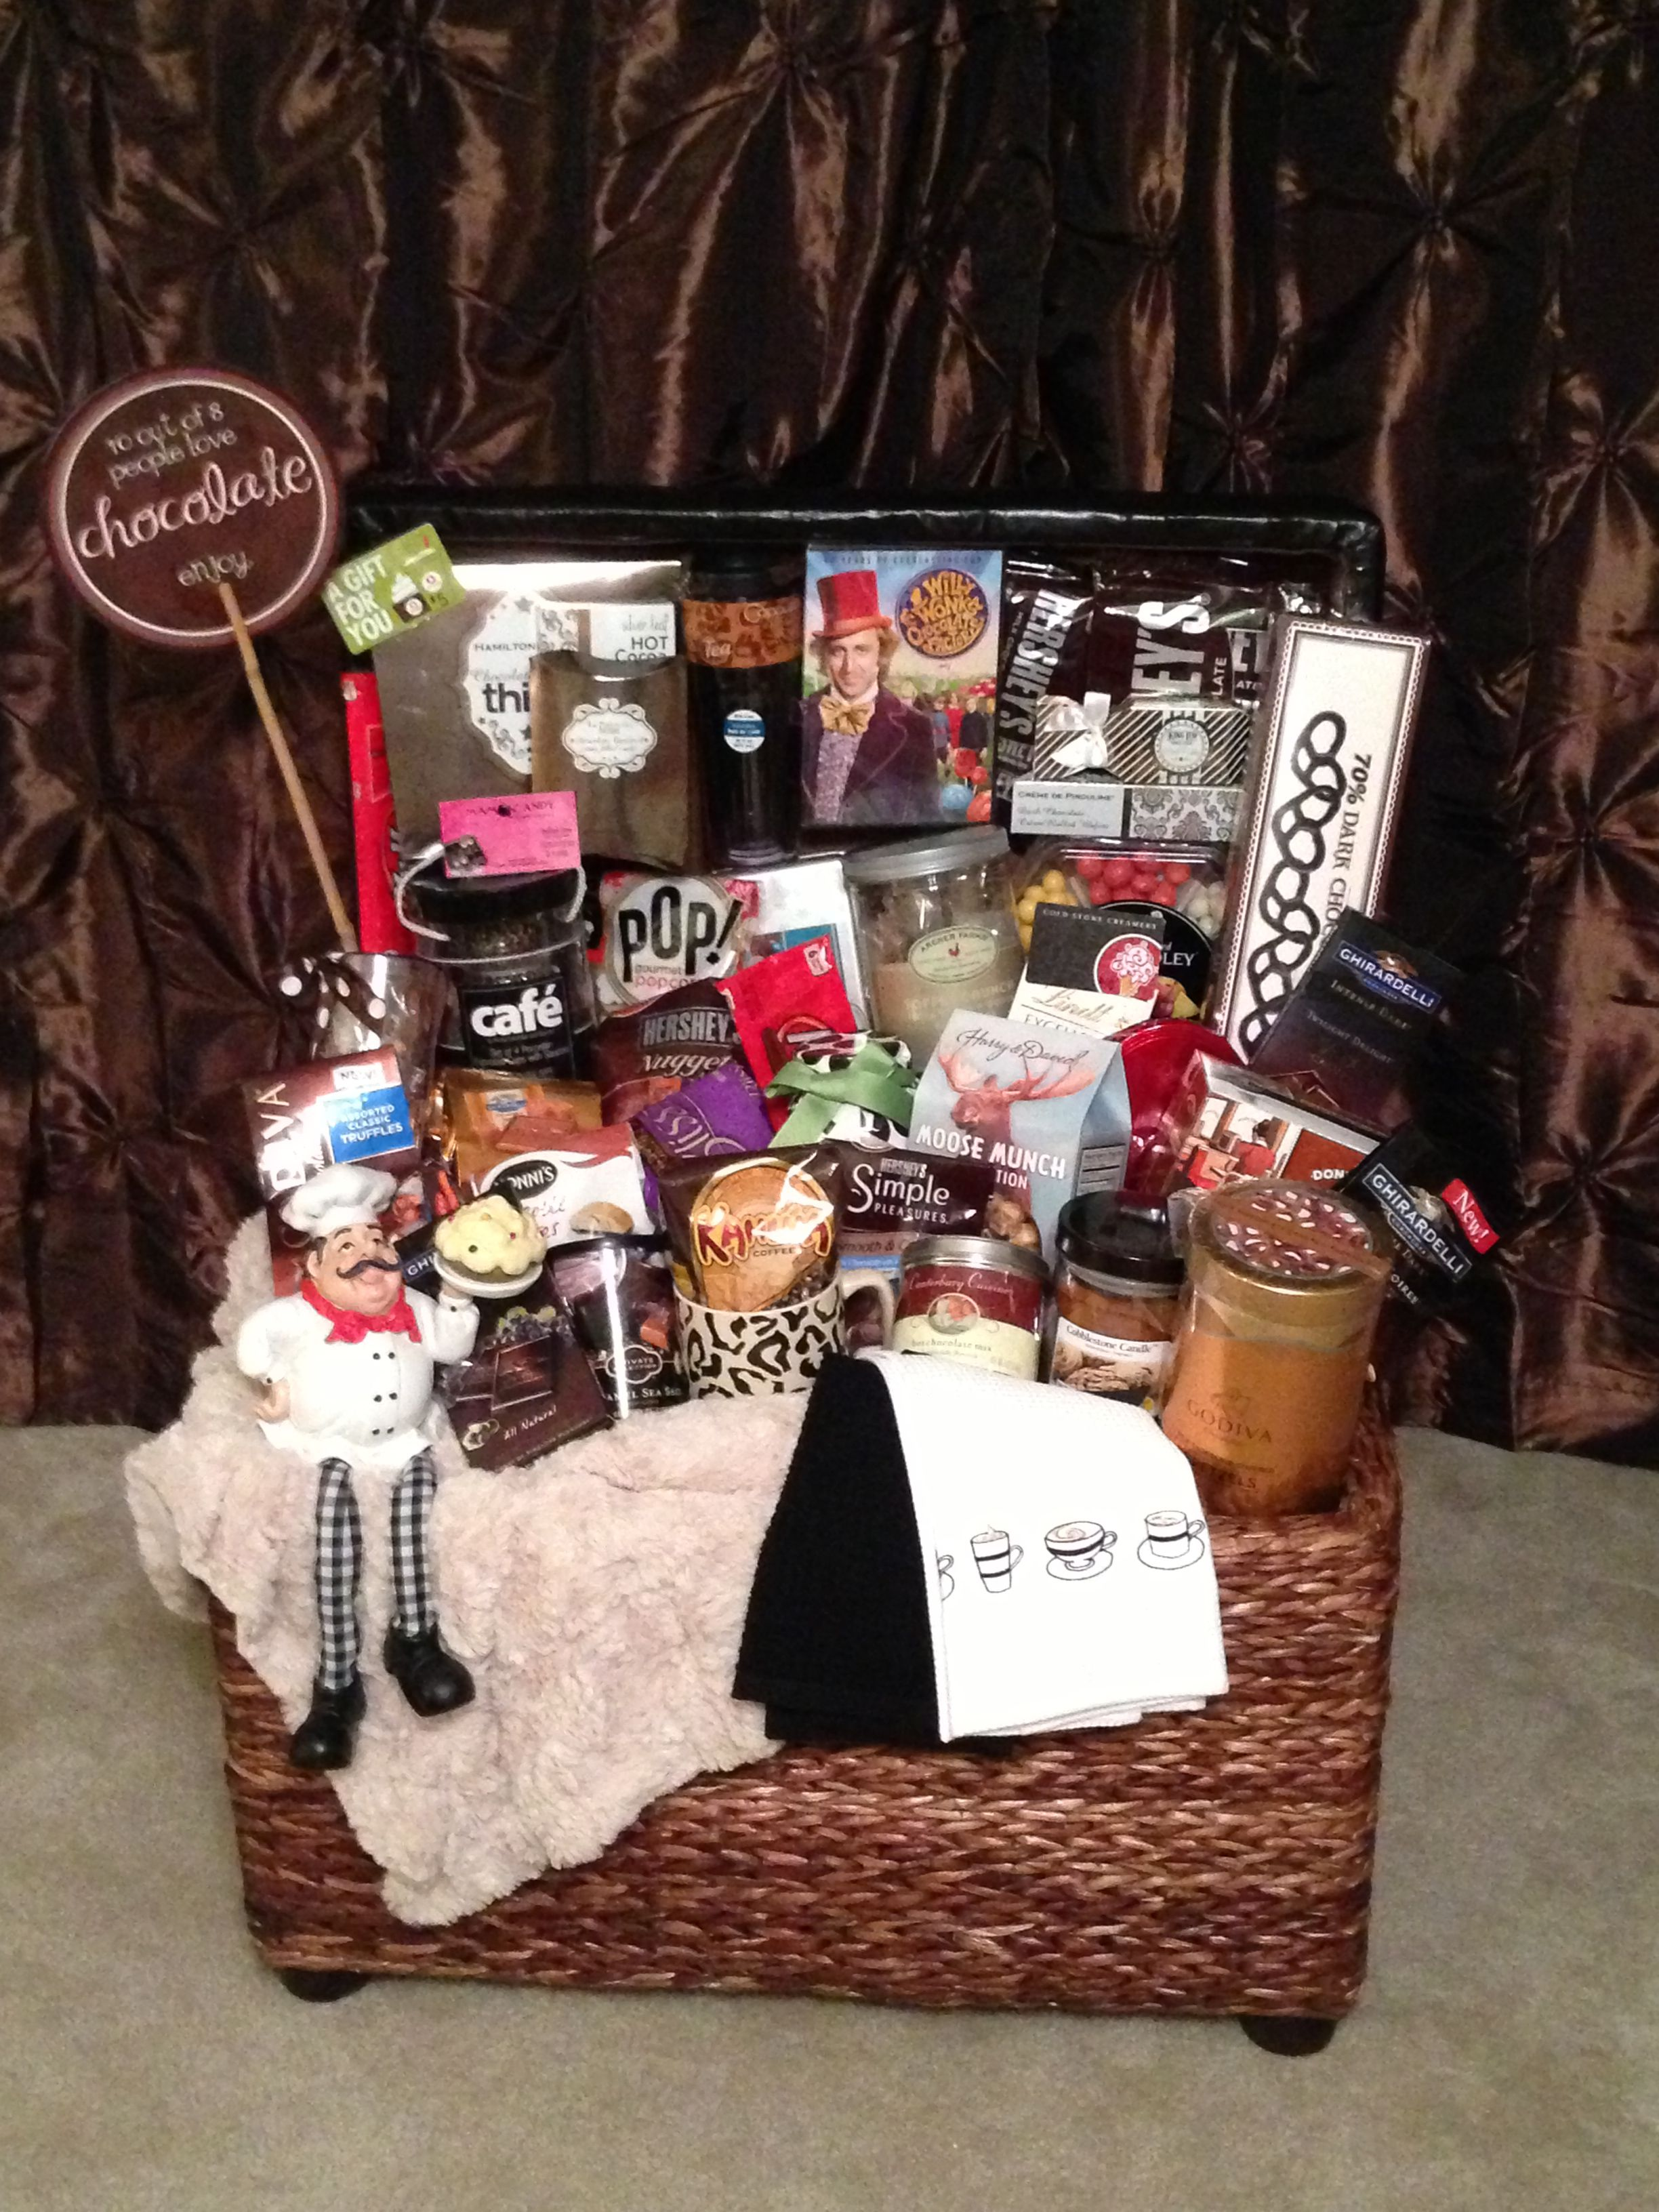 Pin By Shauna Johnson On Gifts Silent Auction Gift Basket Ideas